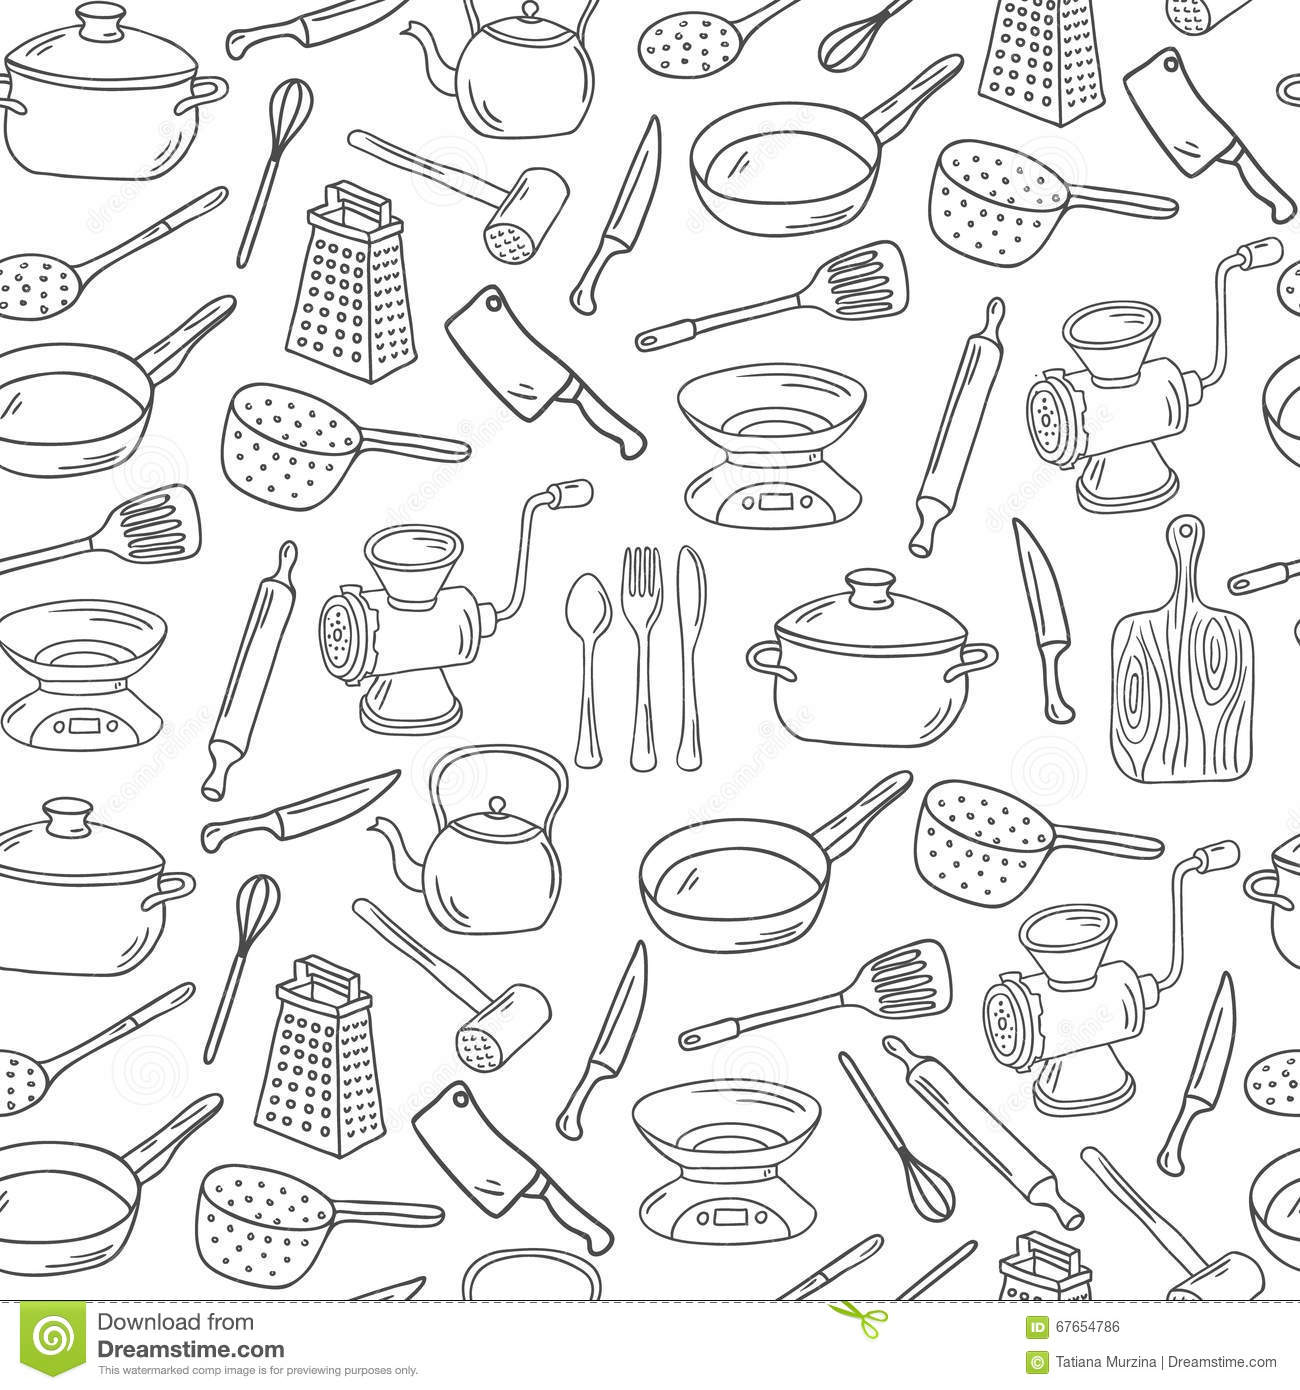 Kitchen Tools Drawings kitchen drawing stock images royalty free images vectors coloring